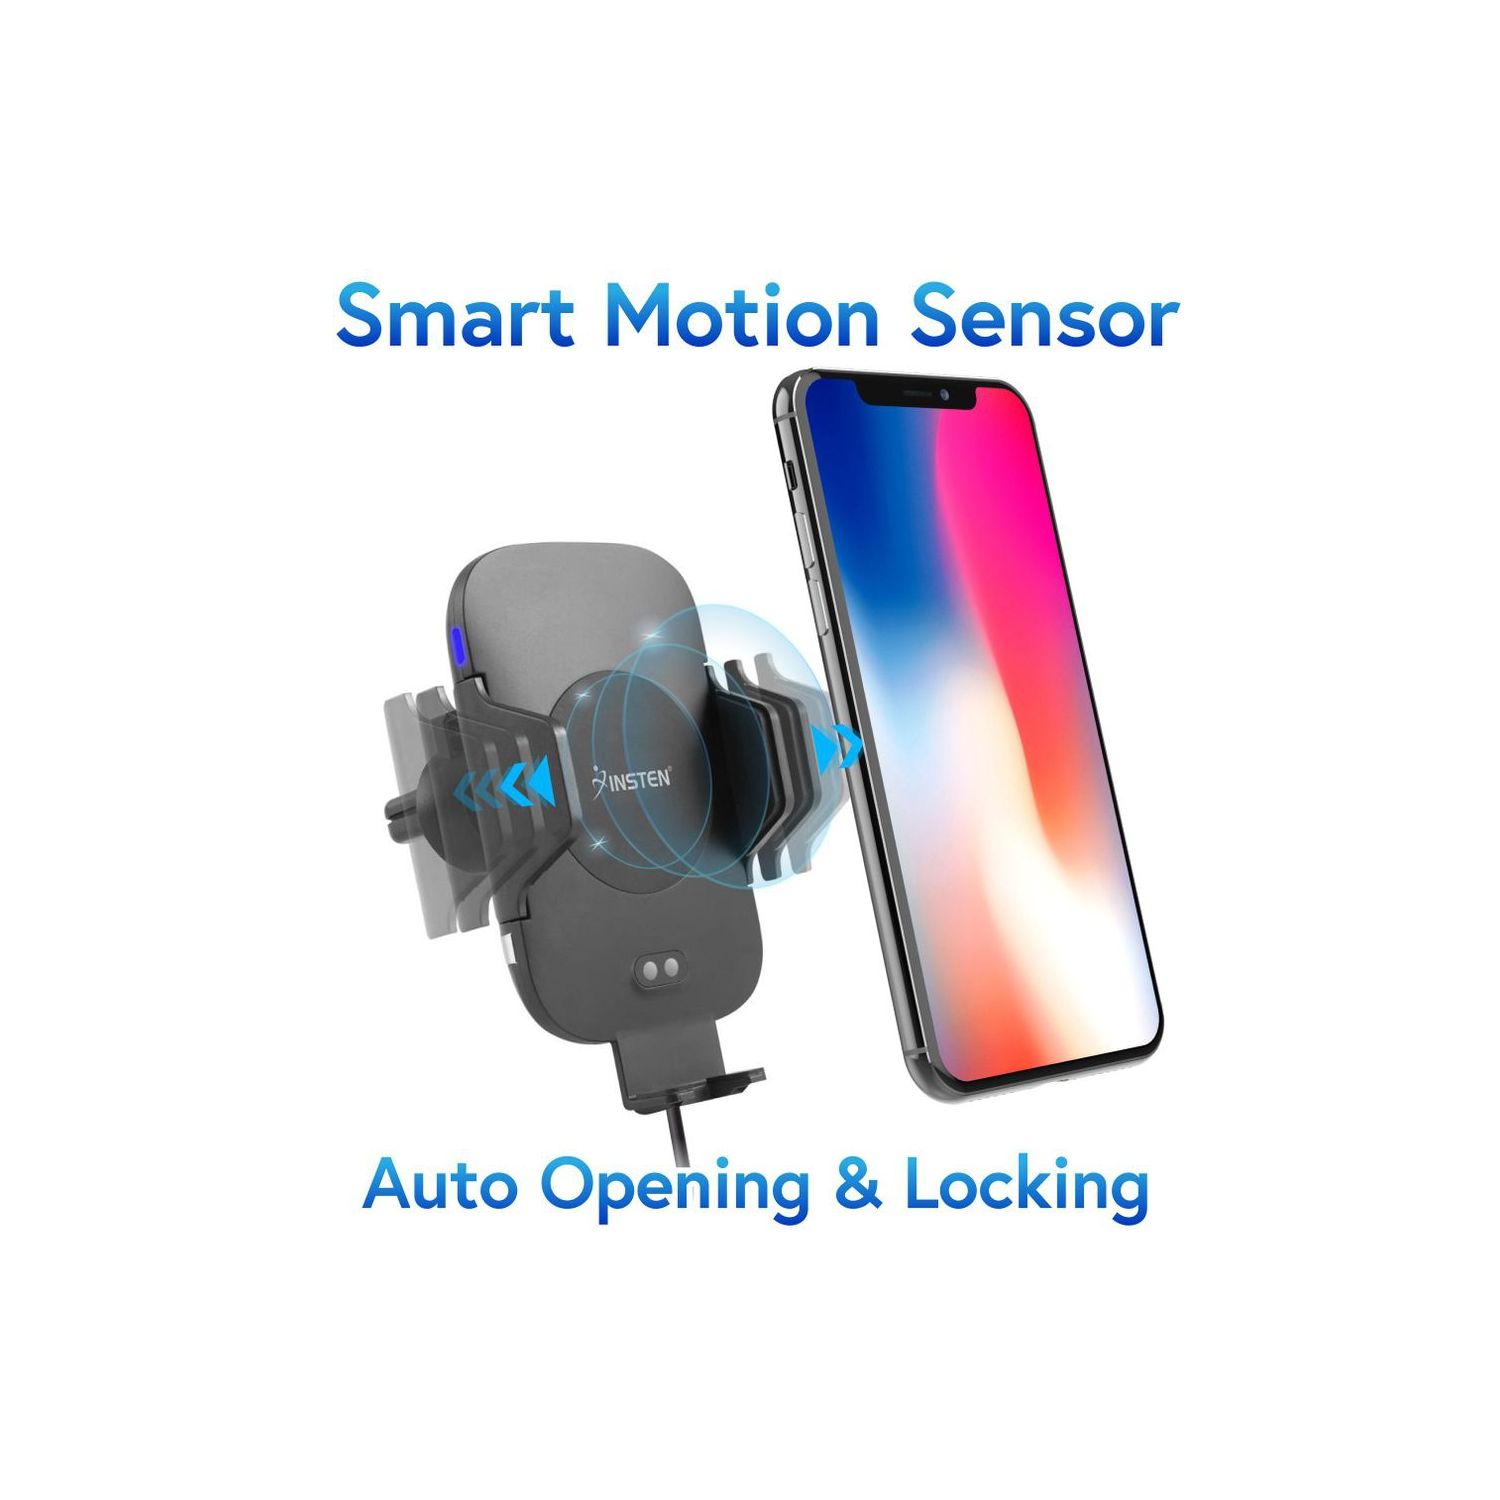 Insten Auto Opening Locking Clamping Car Mount Charger Air Vent